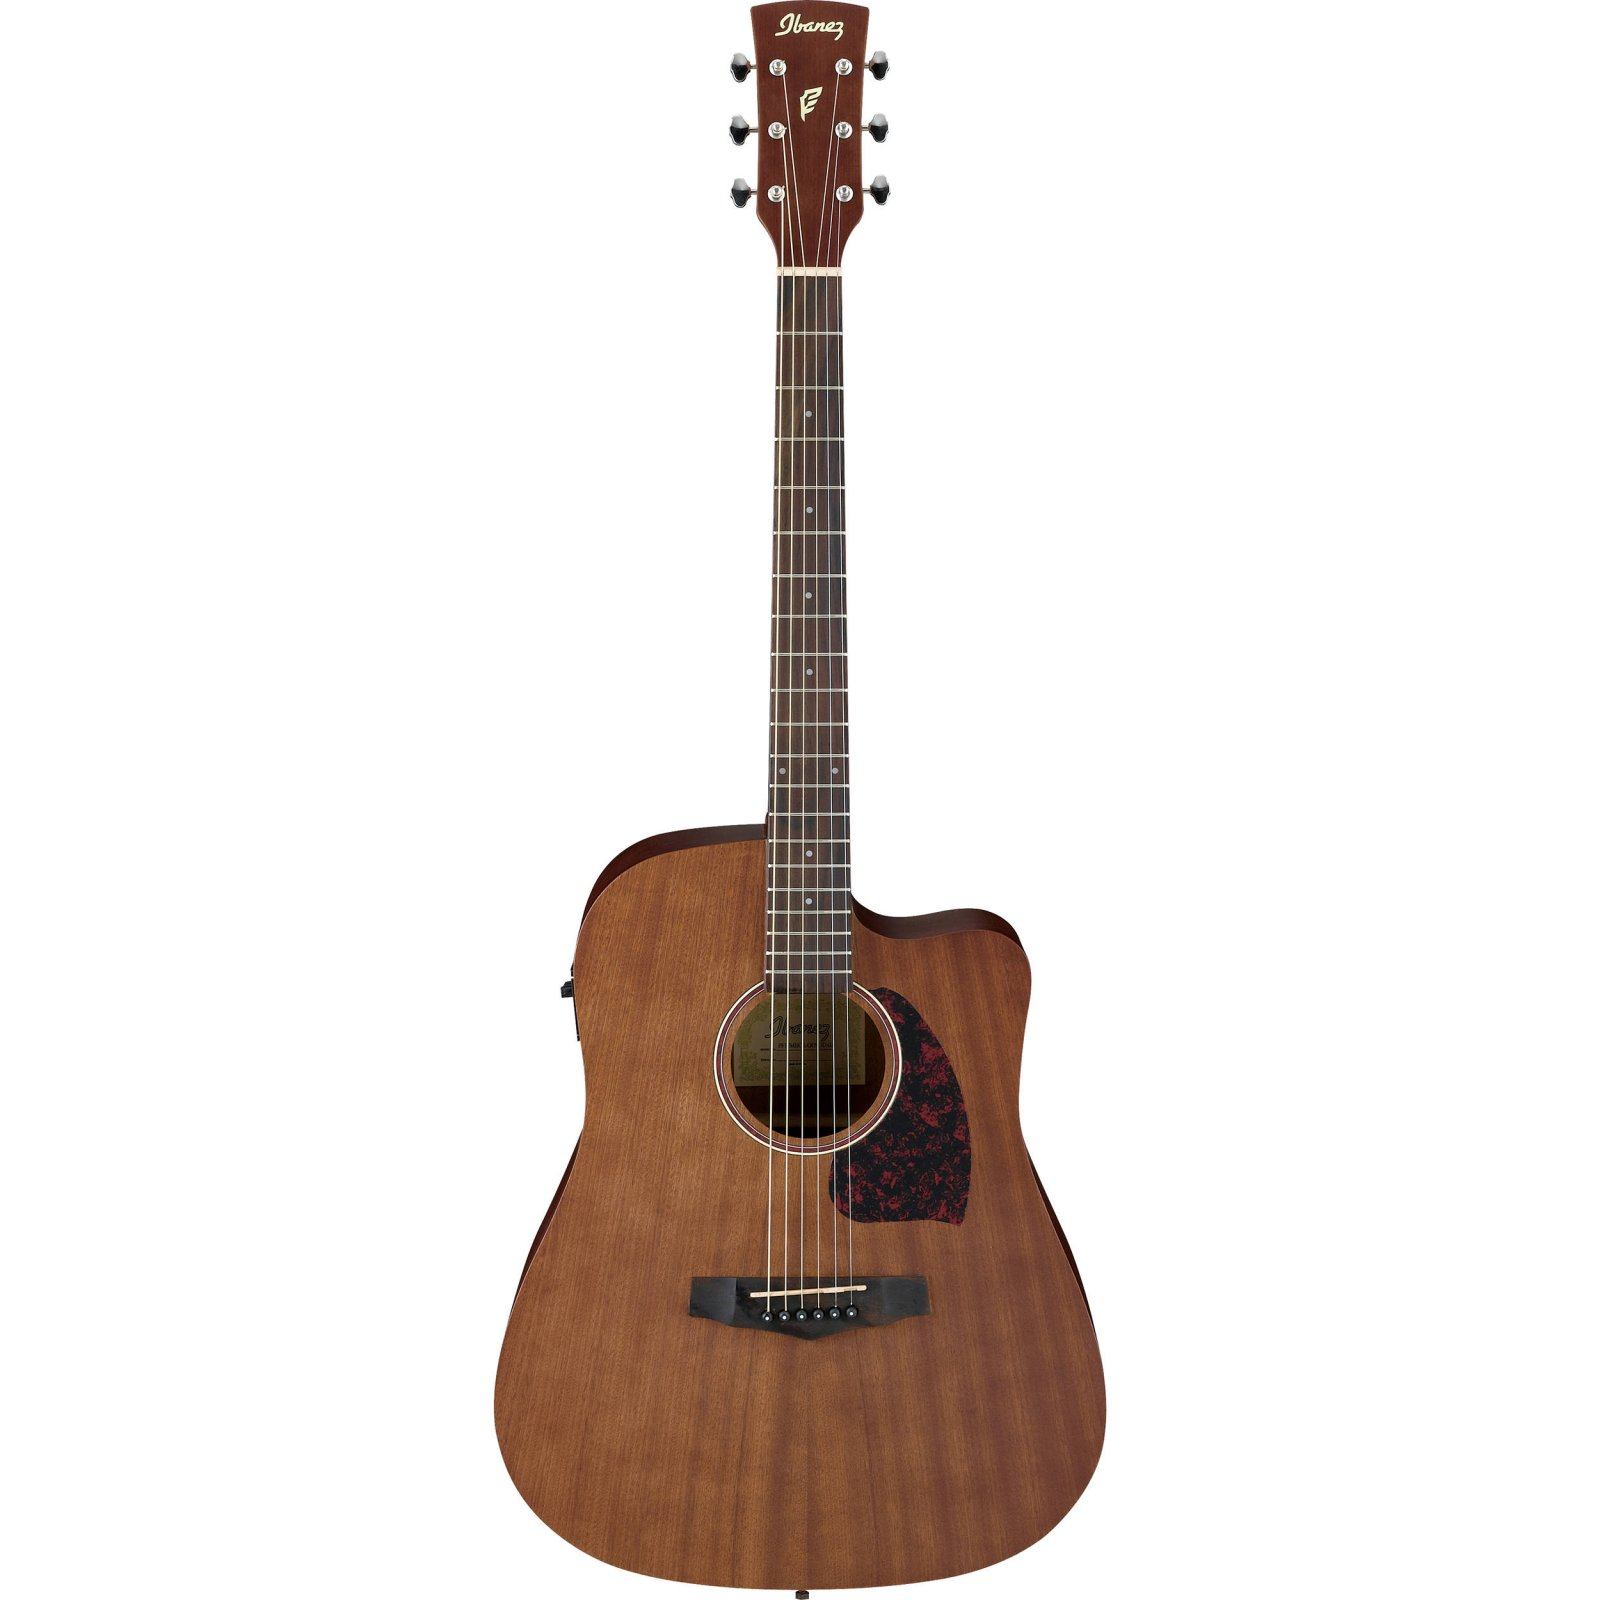 Ibanez PF12MHCEOPN - 6 string Performance  guitar - Open Pore Natural